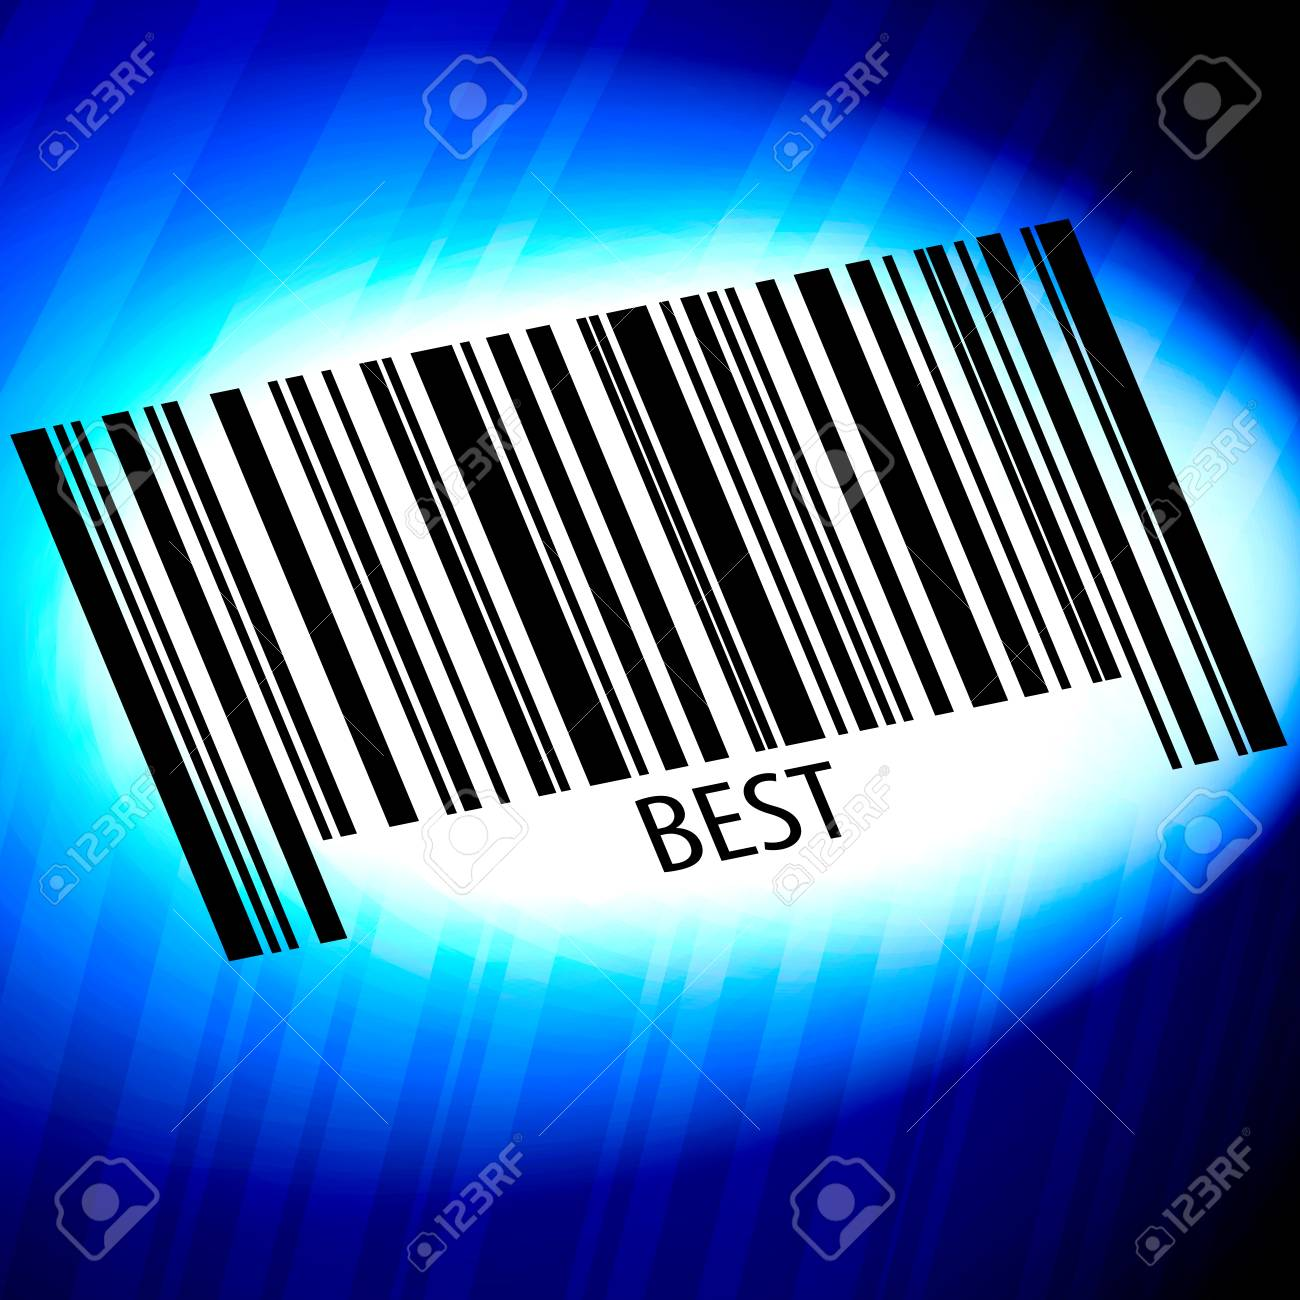 Best - barcode with blue Background